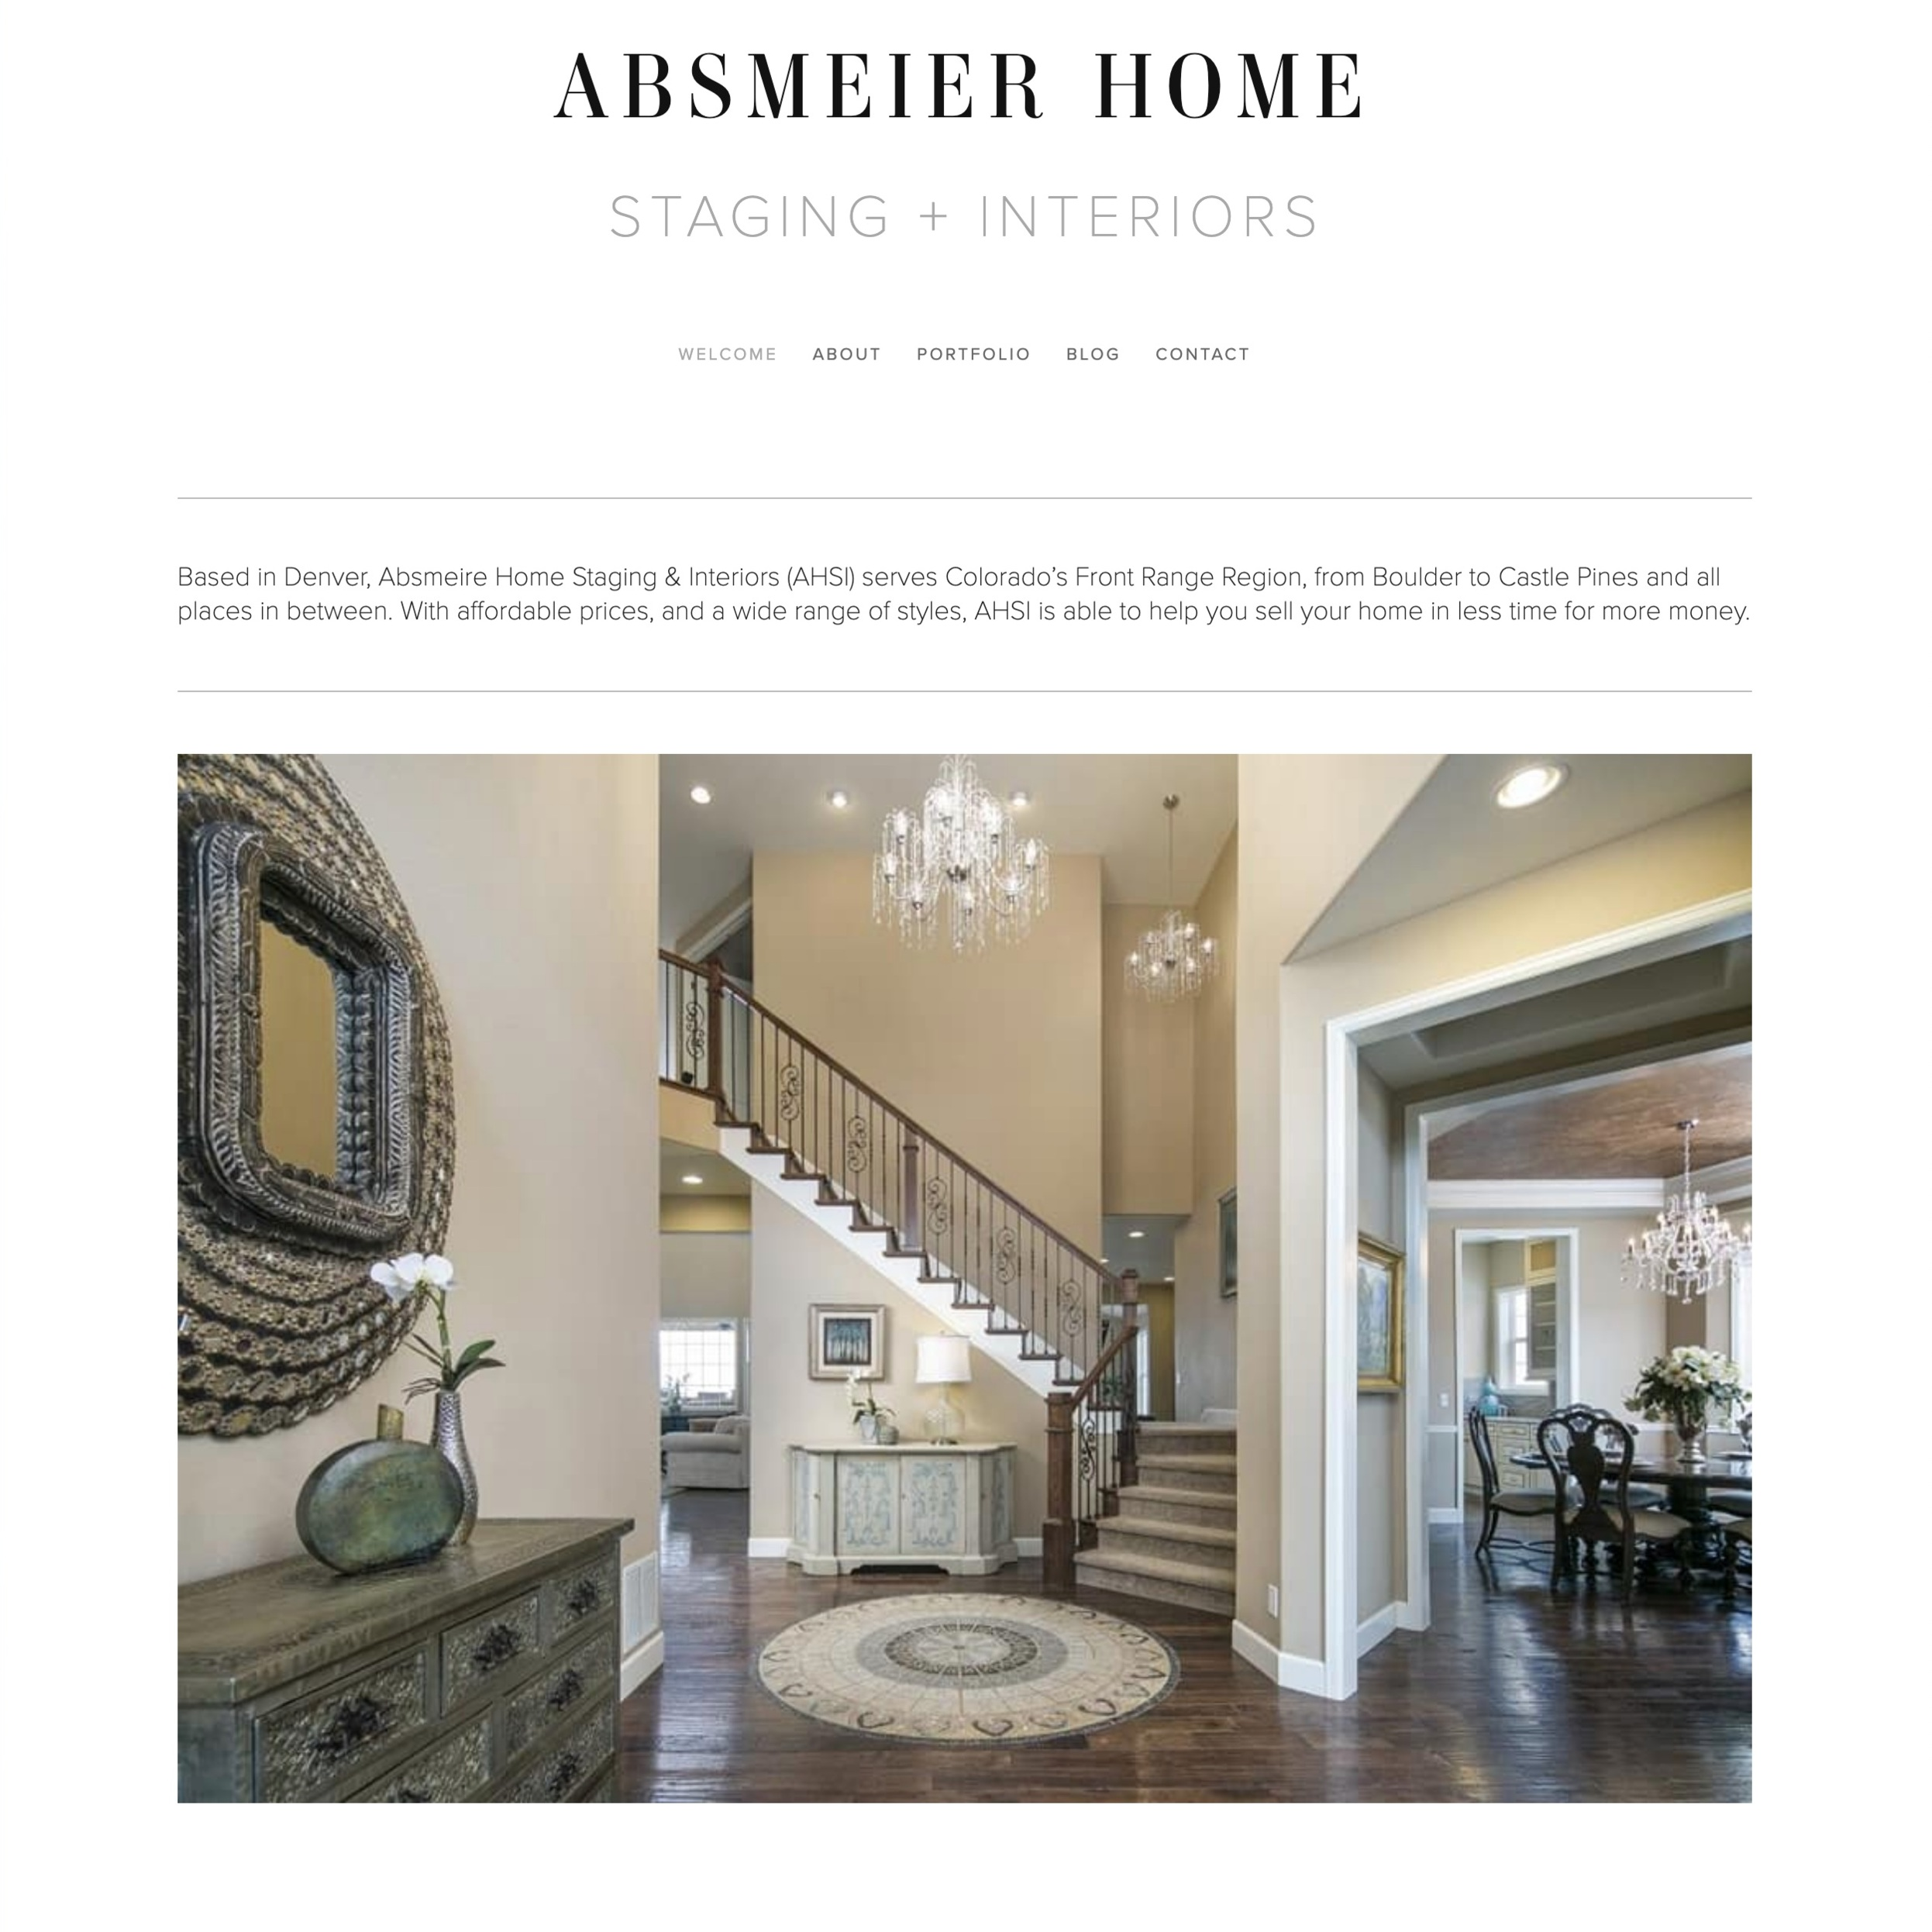 Absmeier Home (Coming Soon)